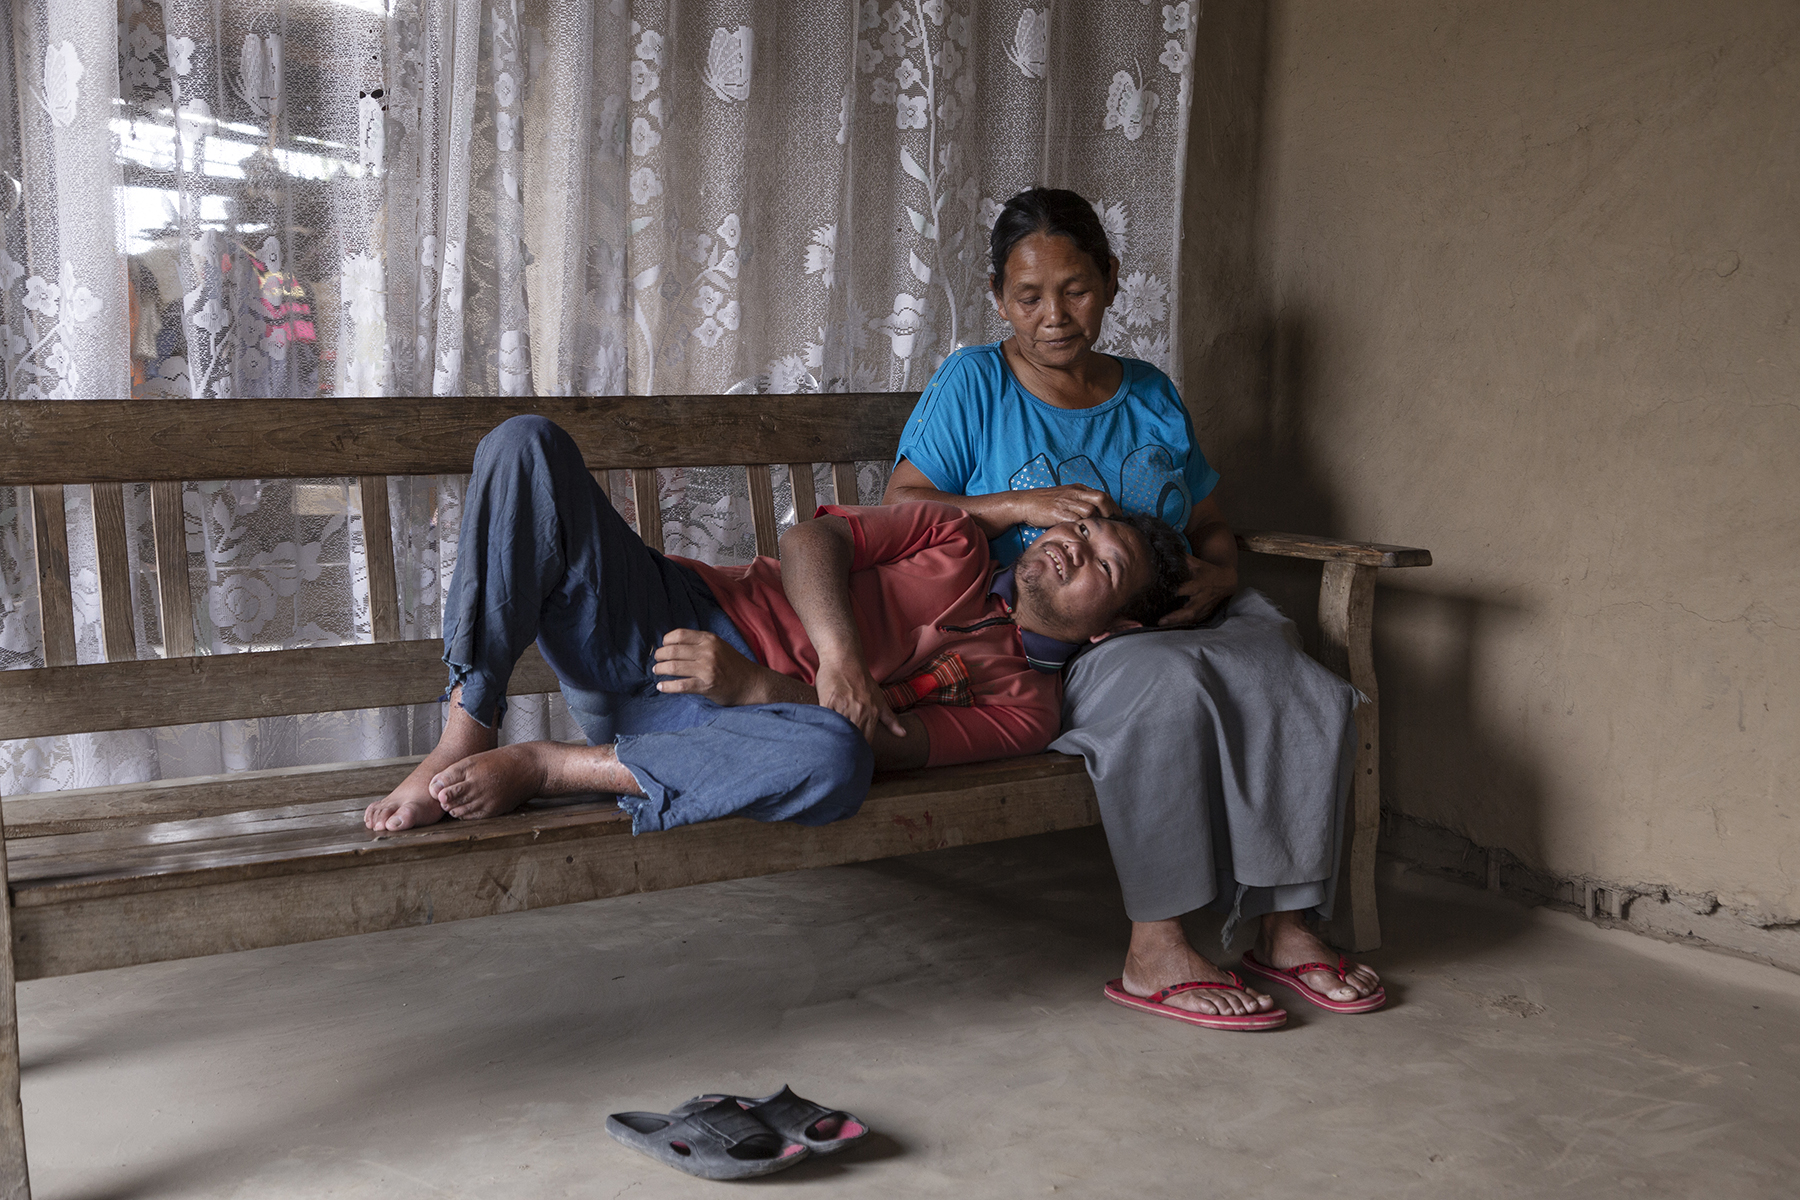 Sohkho wearing bluish grey pants and a faded red T-shirt is indoors, lying on a wooden bench with his head in his mother's lap. He is looking up at his mother Dimkhoneng who wears a sky-blue T-shirt and slate grey skirt. She is looking down at him and stroking his forehead with her right hand.